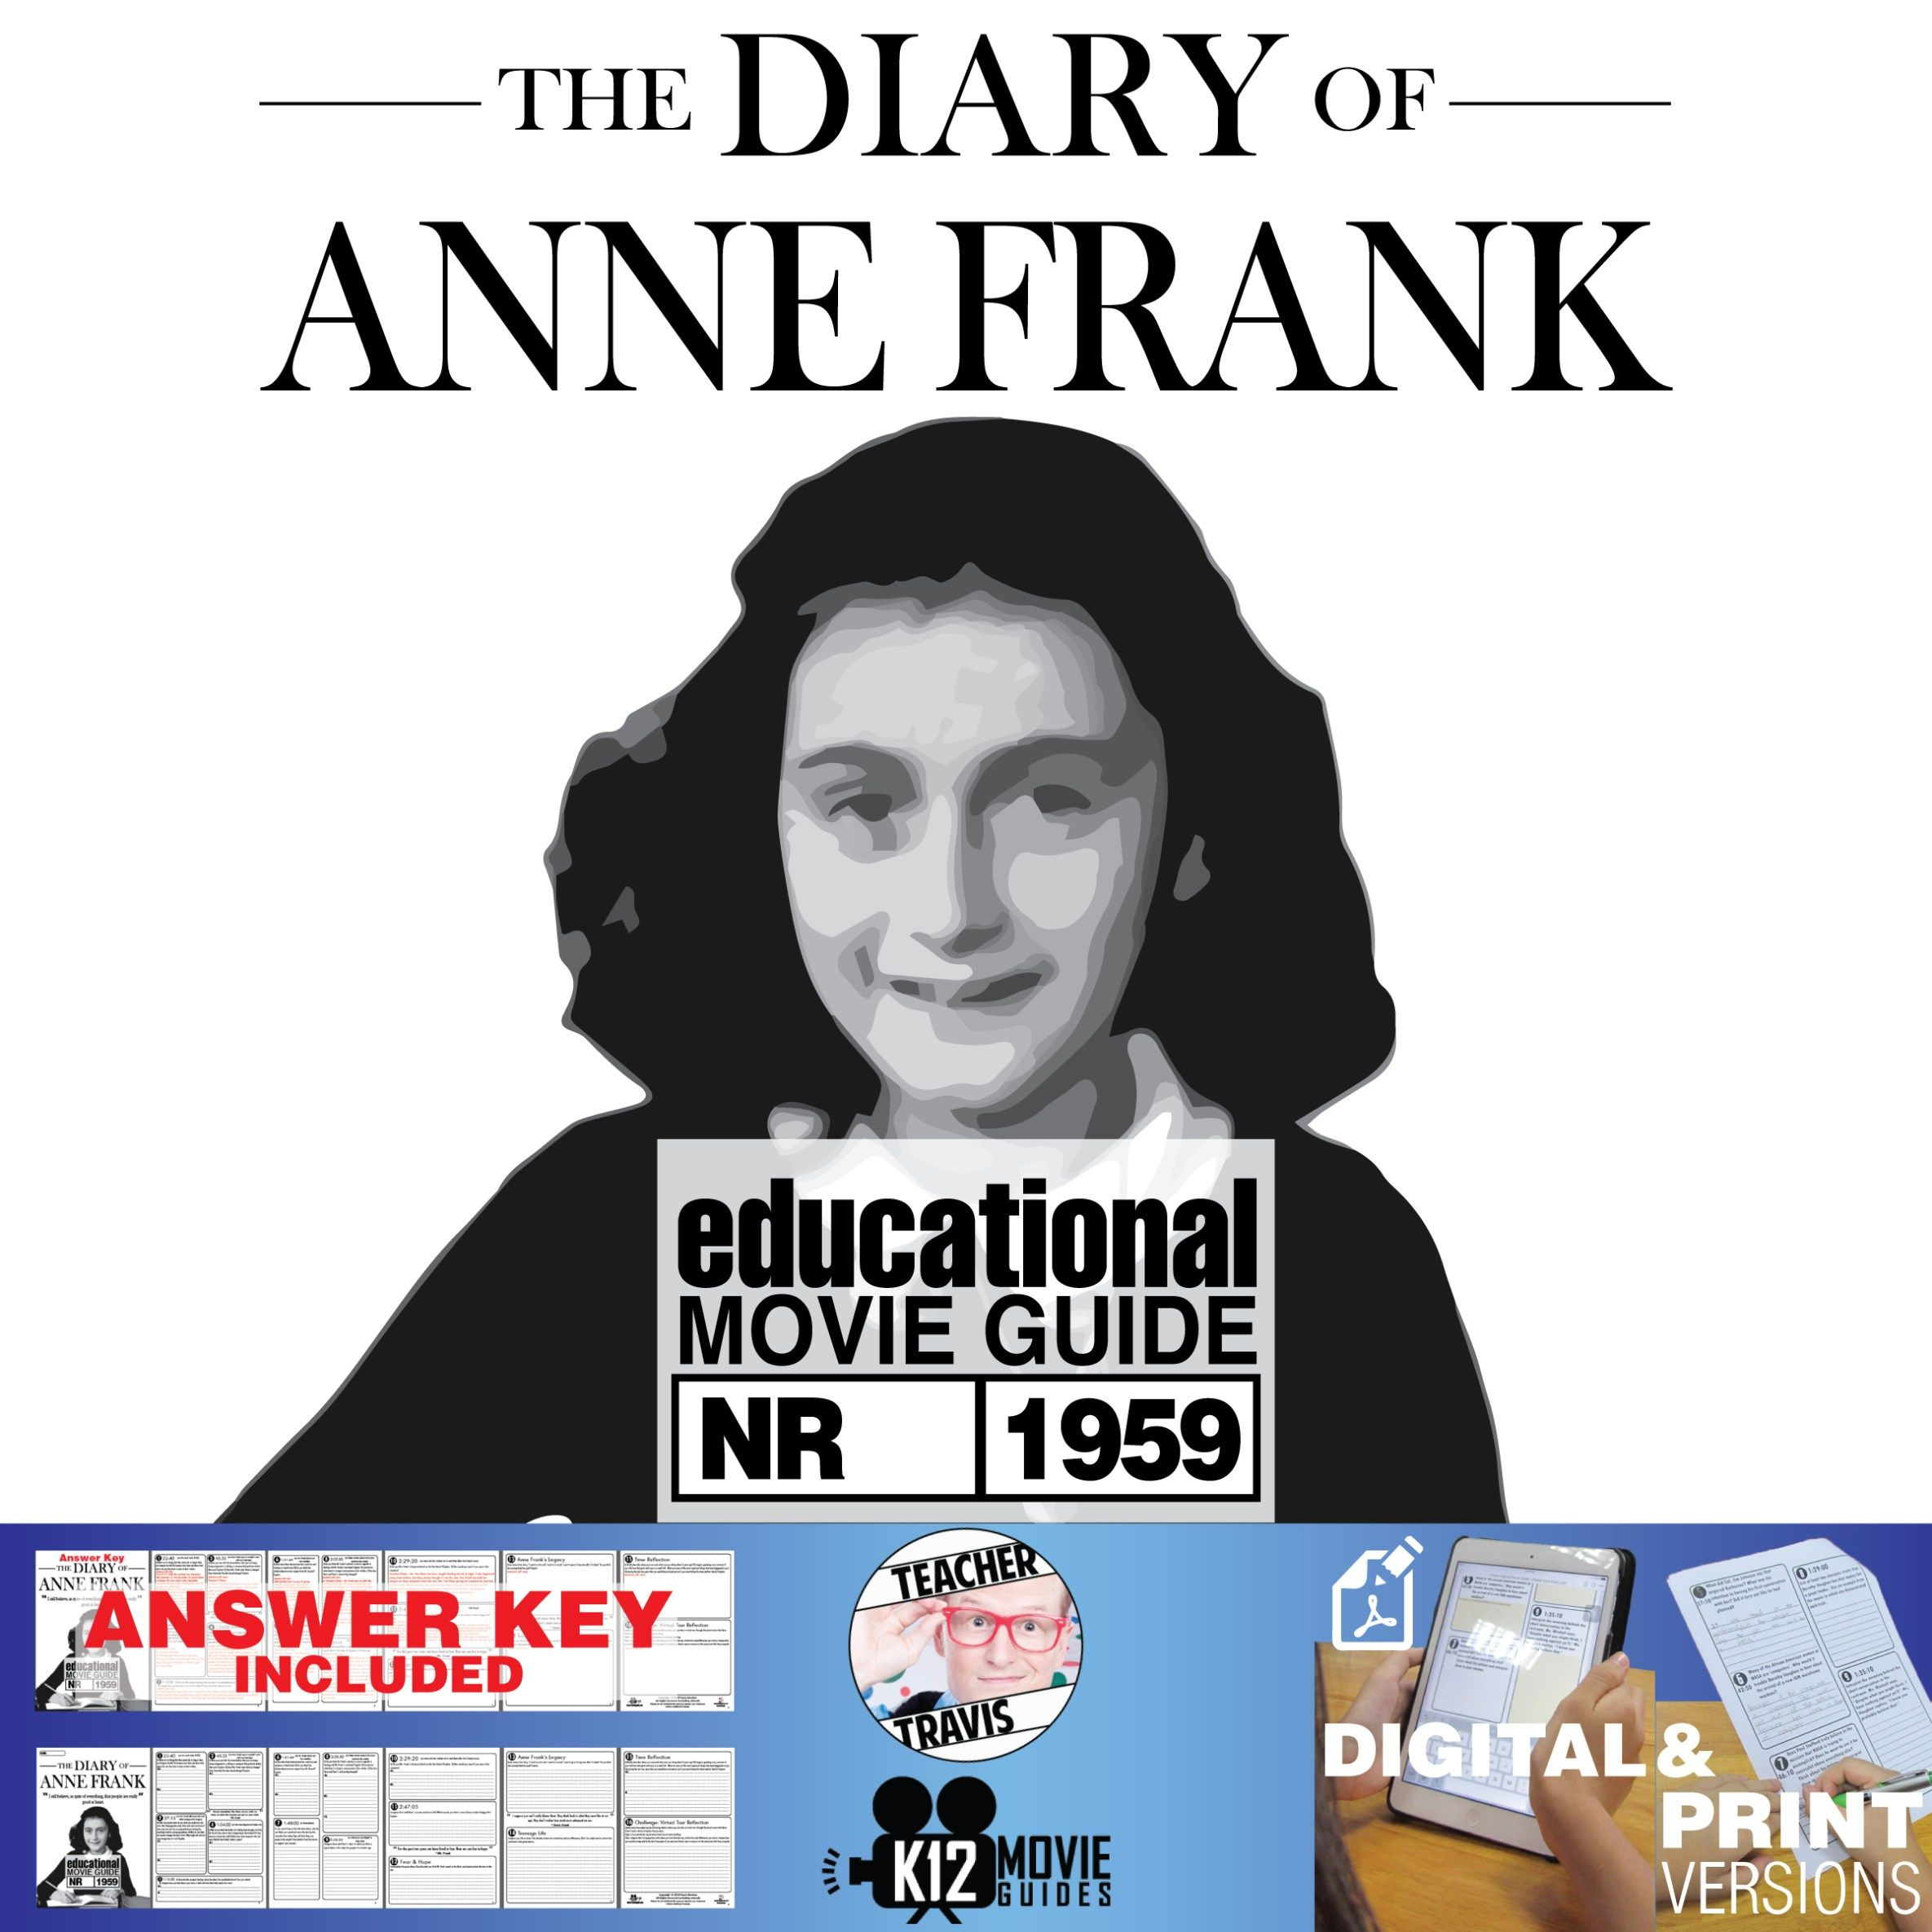 The Diary Of Anne Frank Movie Guide